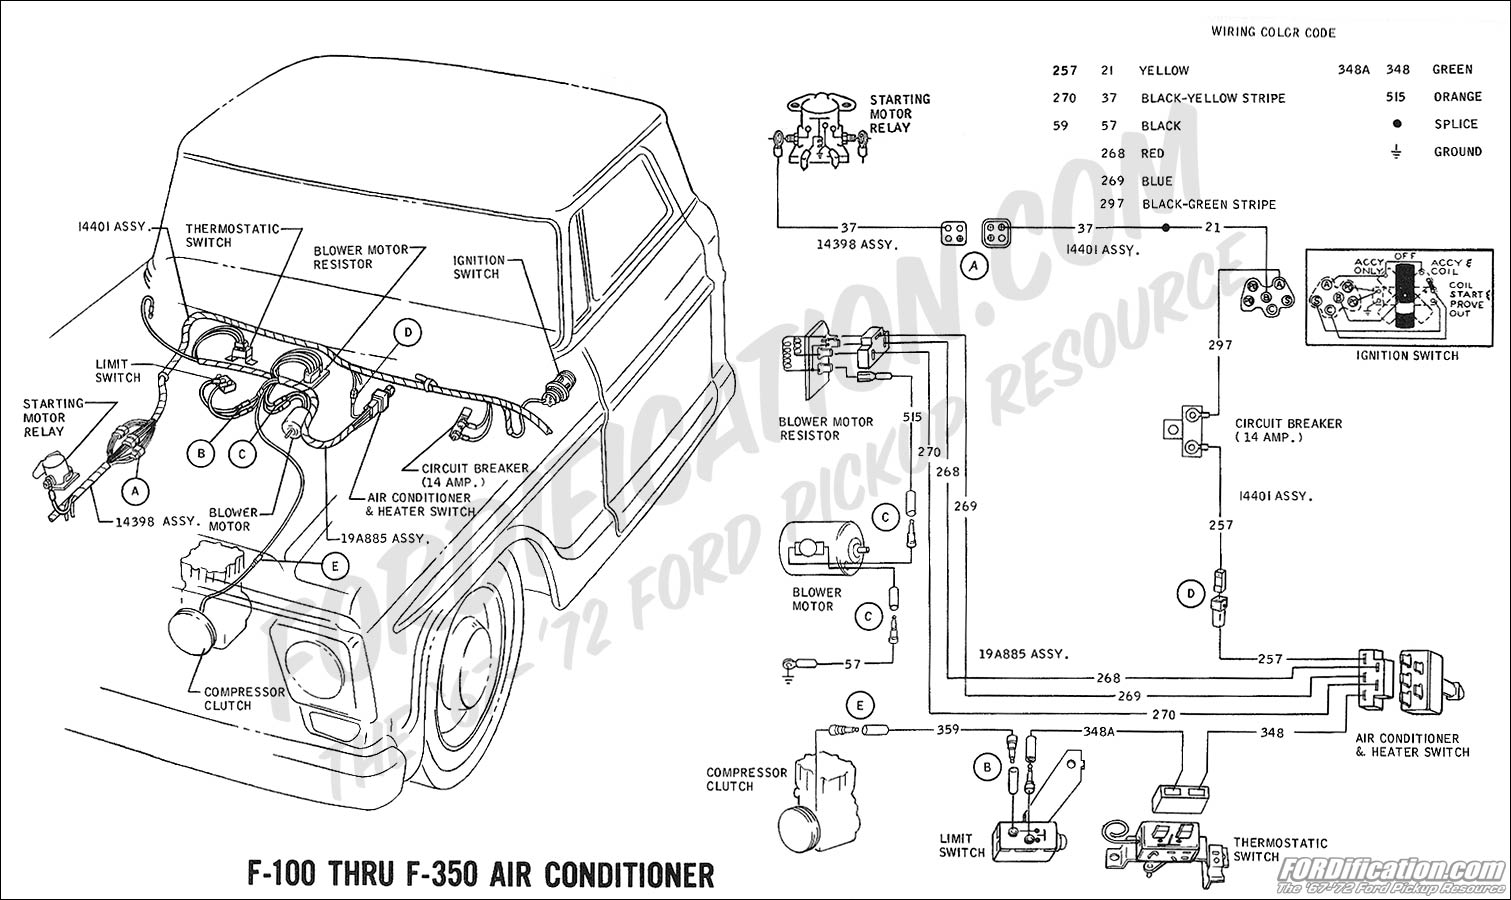 1972 Ford Truck Air Conditioner Blower Motor Wiring Diagrams Car C10 Ac Diagram 1969 F 100 Thru 350